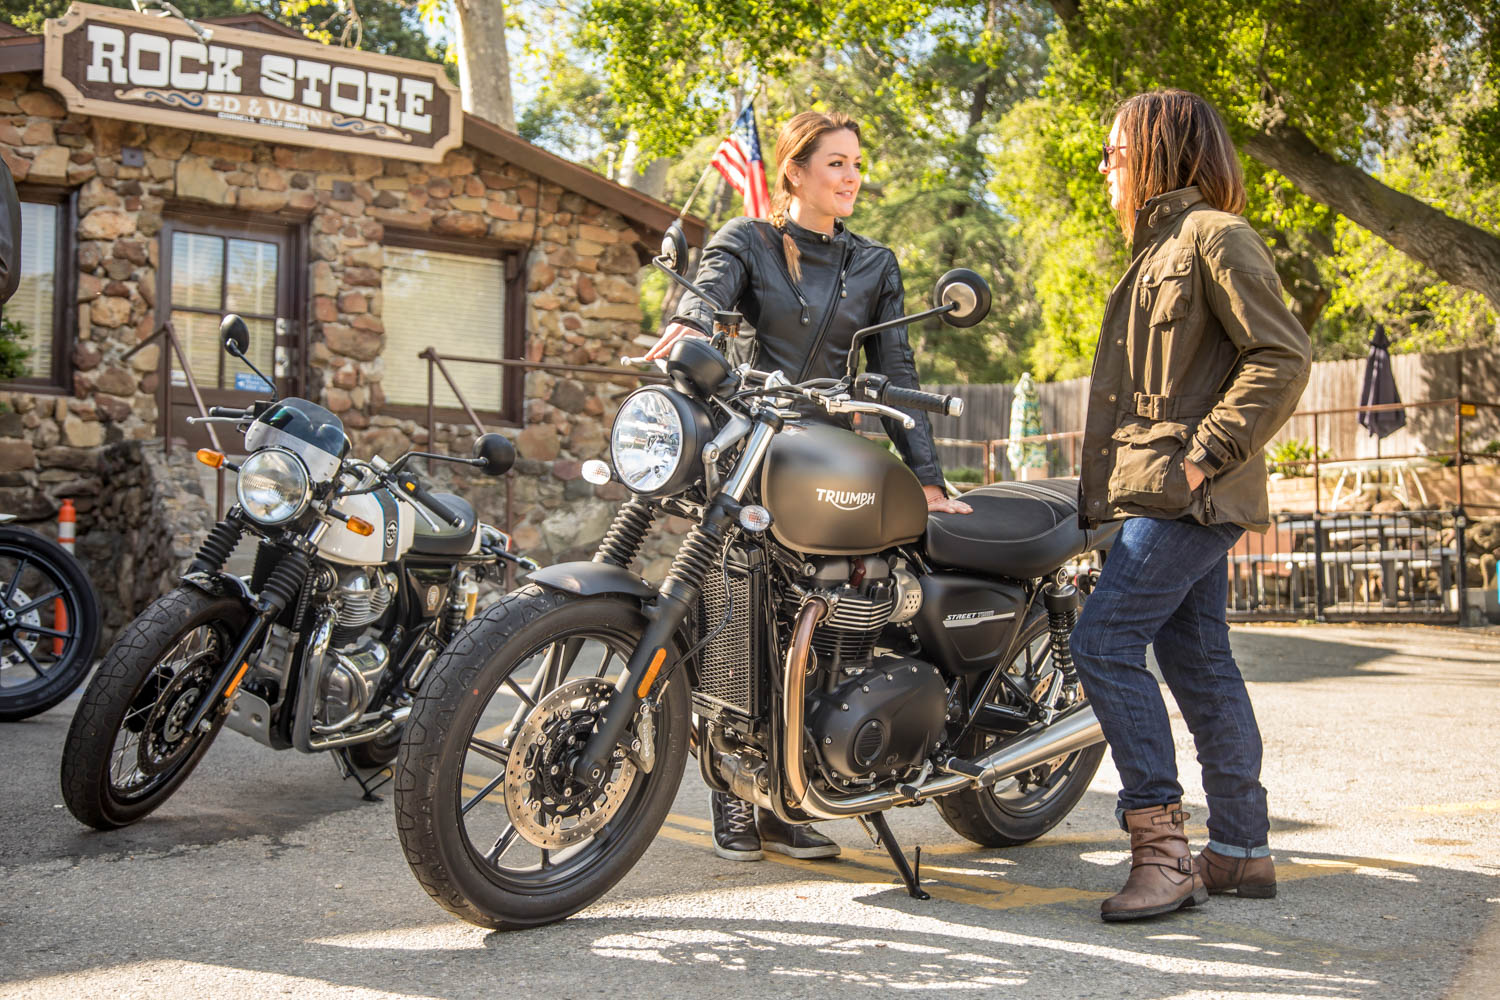 It looks vintage, but the Triumph Street Twin is every inch a modern bike, with ripping performance from its 900-cc parallel-twin, exquisite handling, and upscale components.